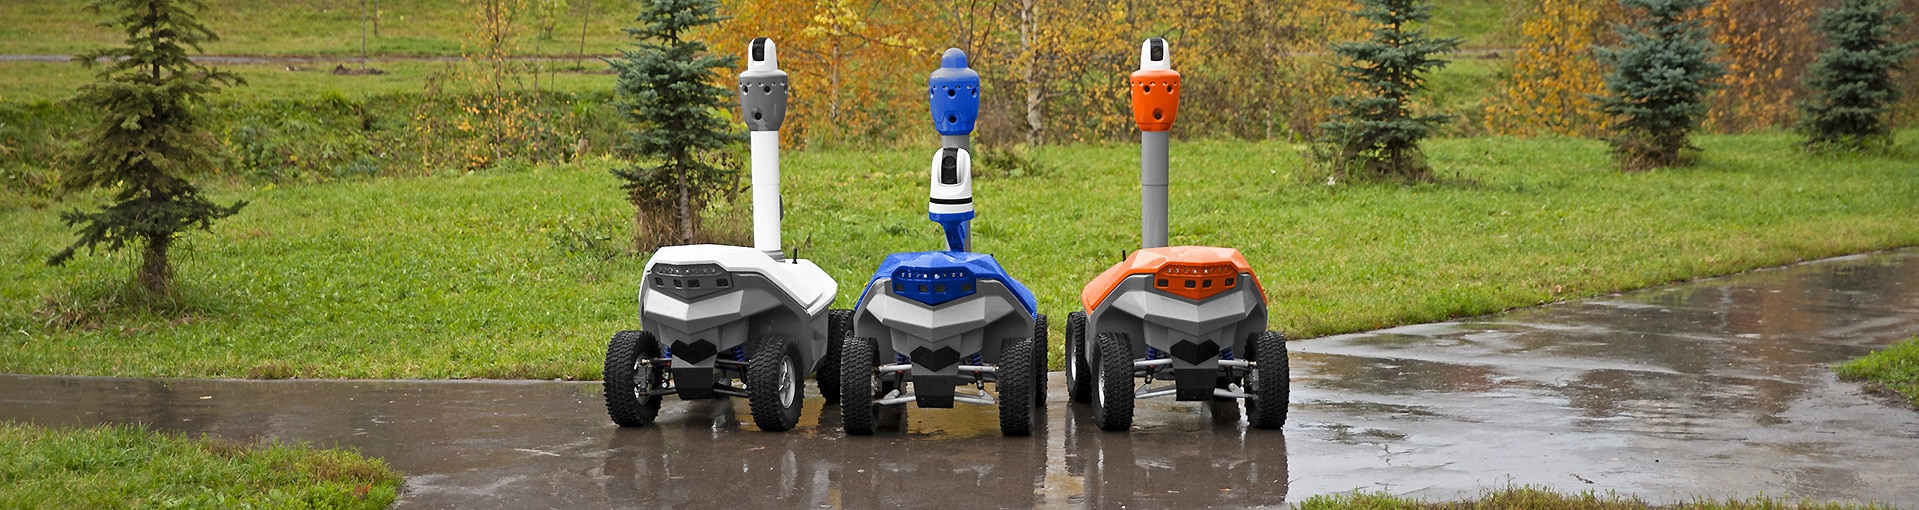 Autonomous ground vehicles S5.2